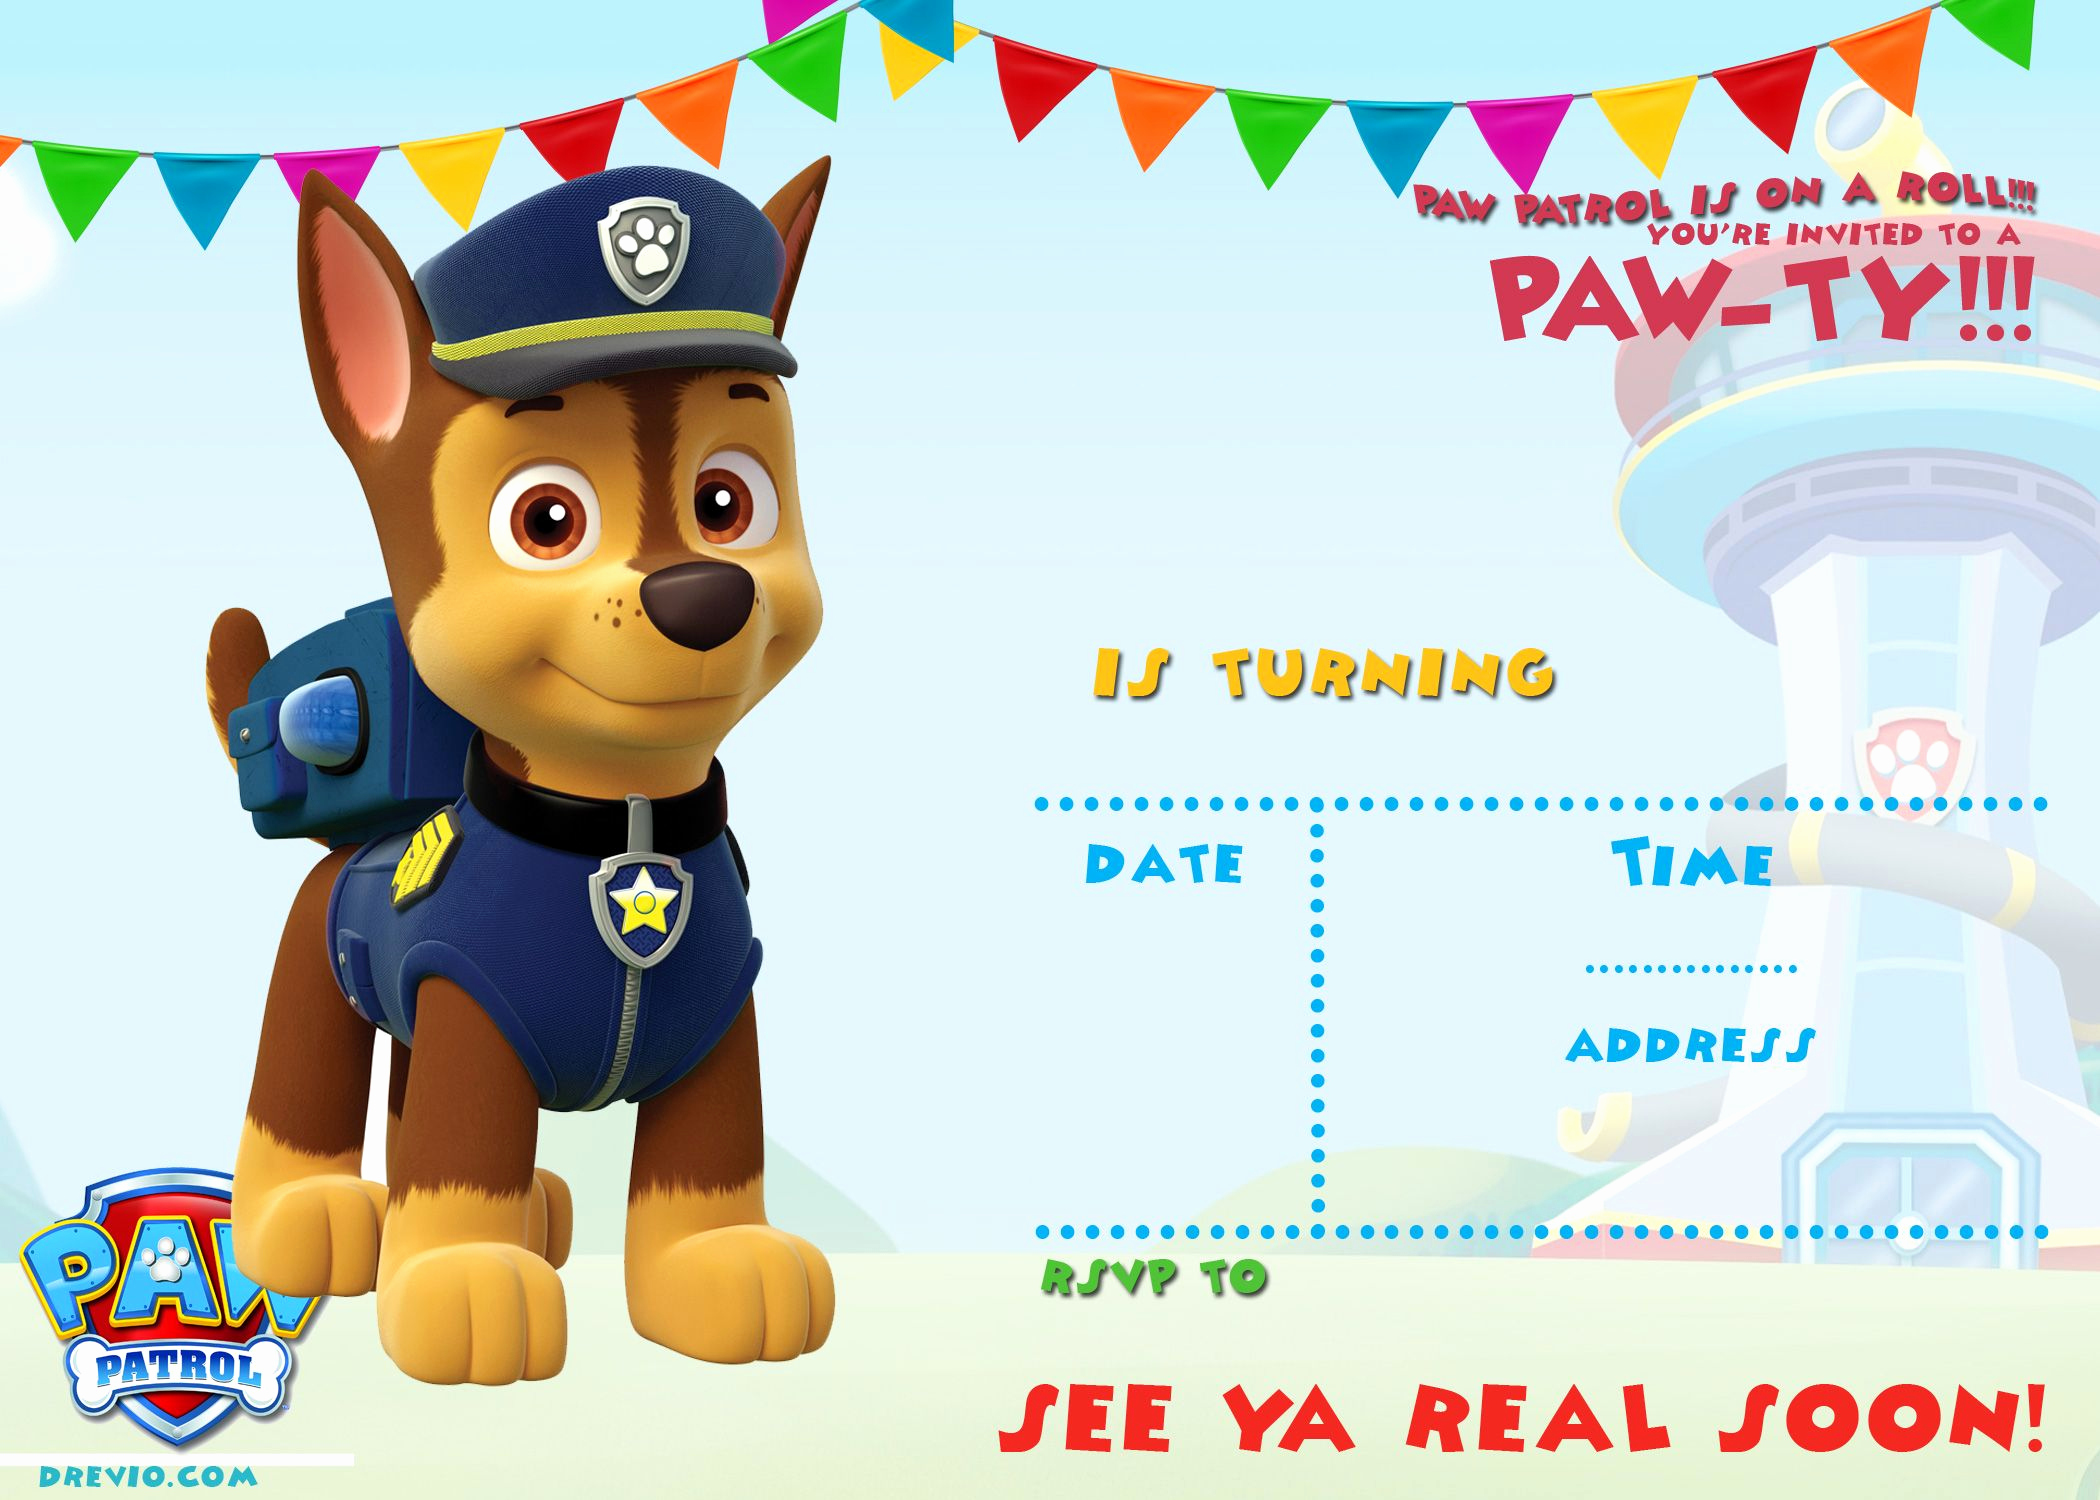 Paw Patrol Invitation Template Blank Beautiful Free Printable Paw Patrol Invitation Template All